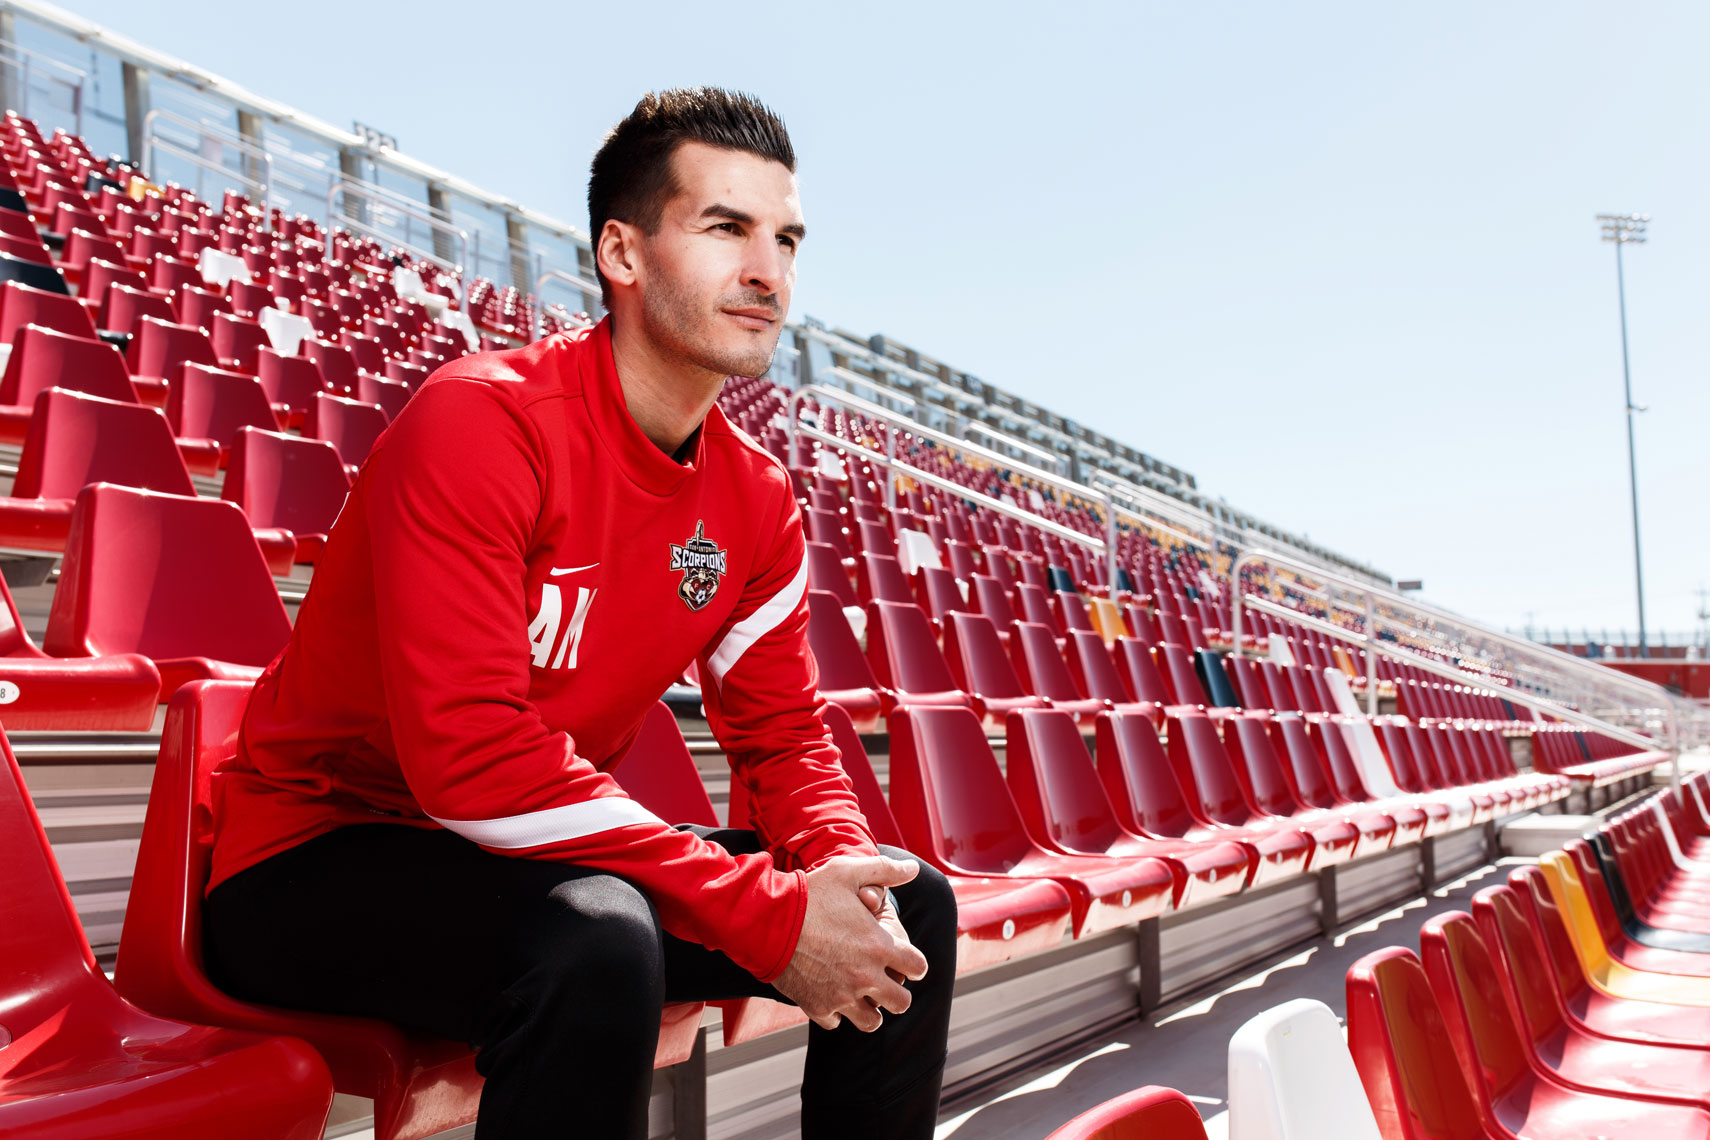 Alen Marcina, Head Coach of the San Antonio Scorpions, photographed in San Antonio, Texas by Editorial photographer Josh Huskin.